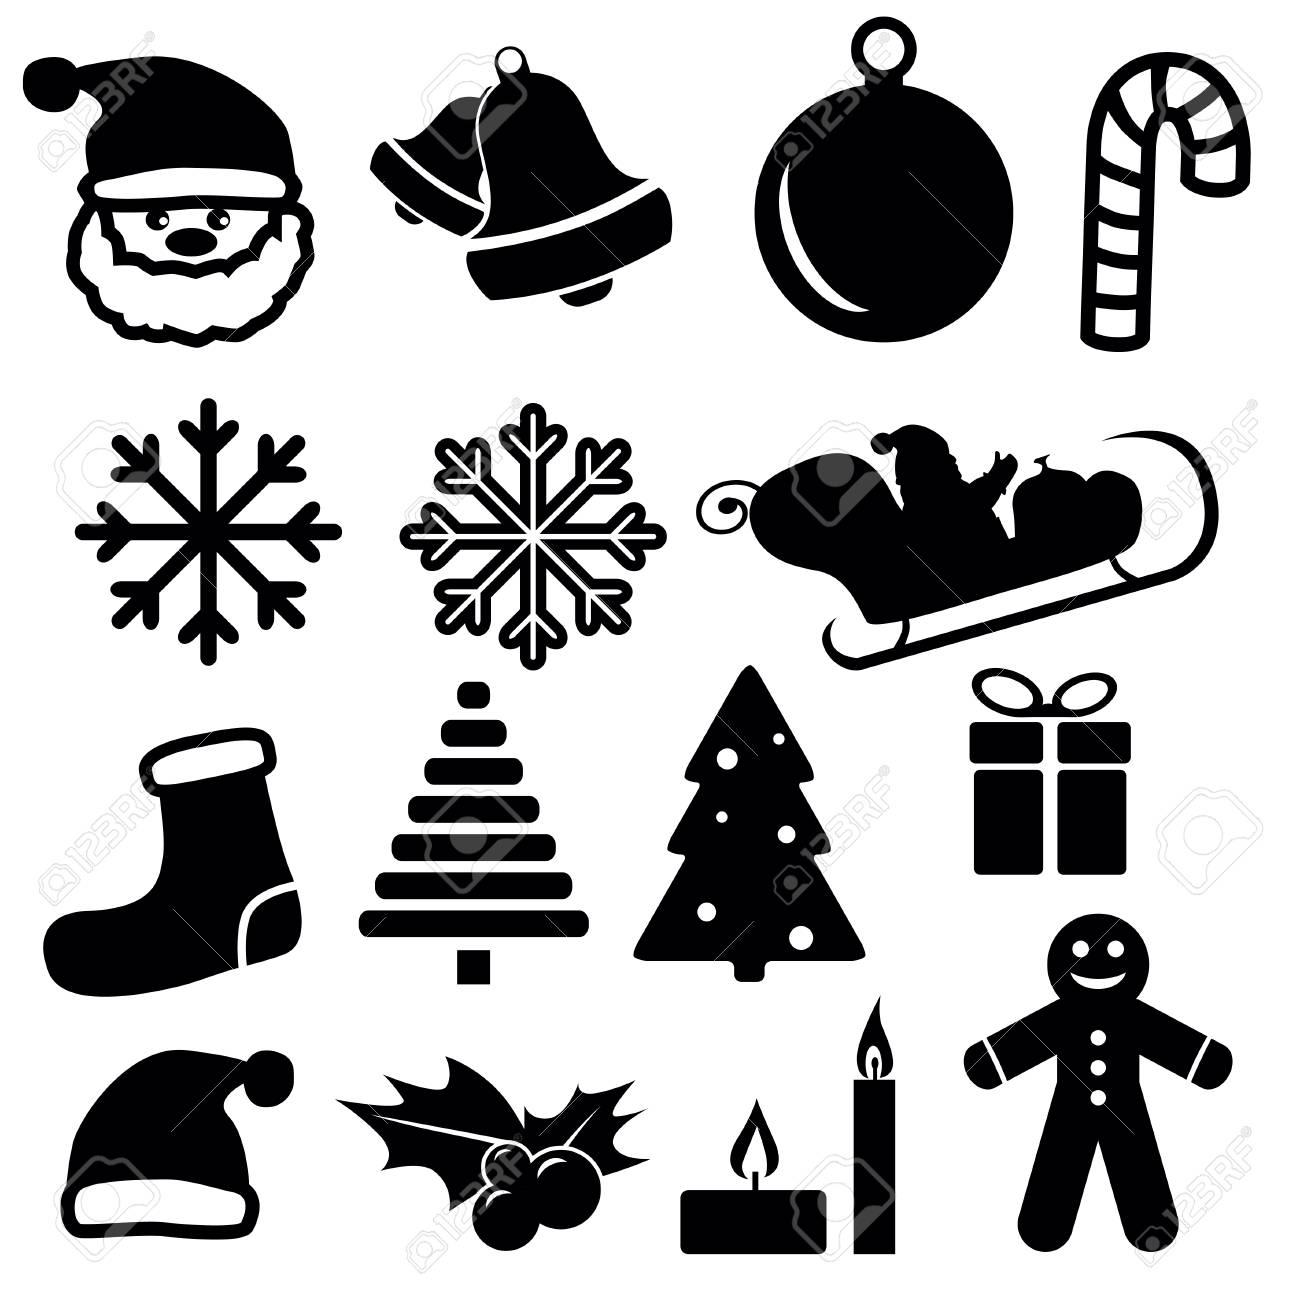 Set of christmas and winter icons isolated on white background. Vector illustration. - 68098591